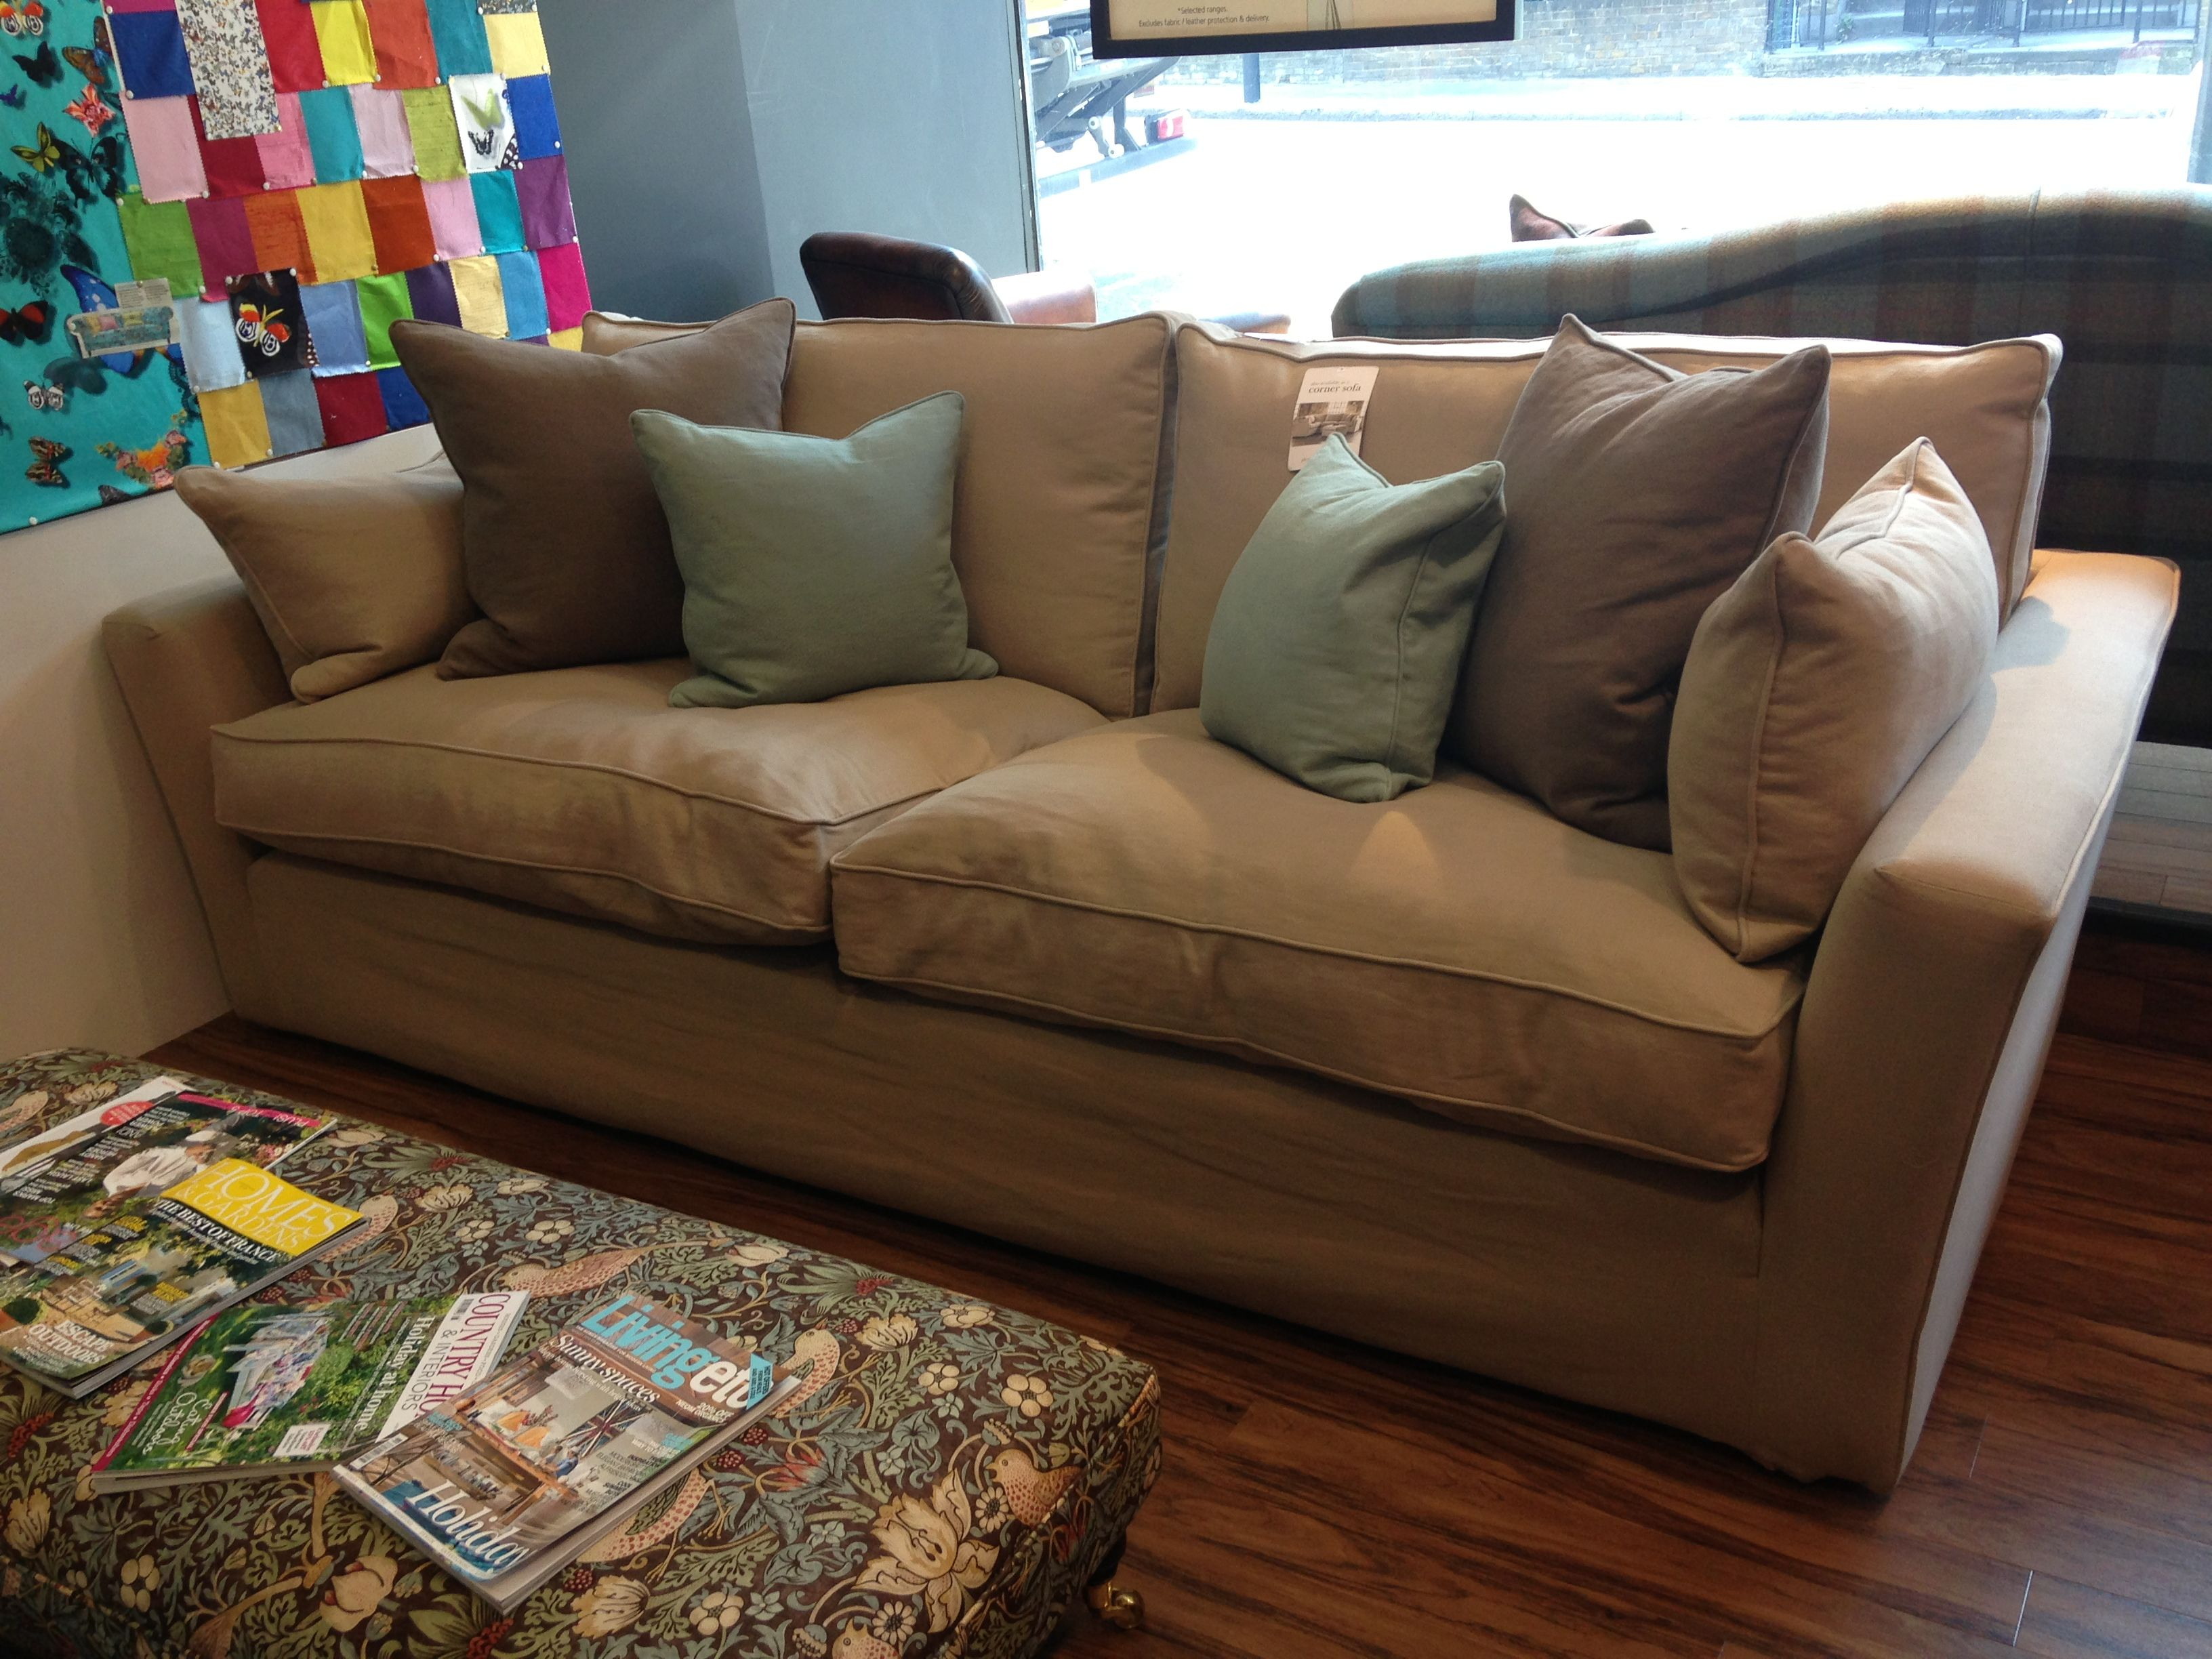 Lady May 3 seater sofa in Seduction Fir aworkshop